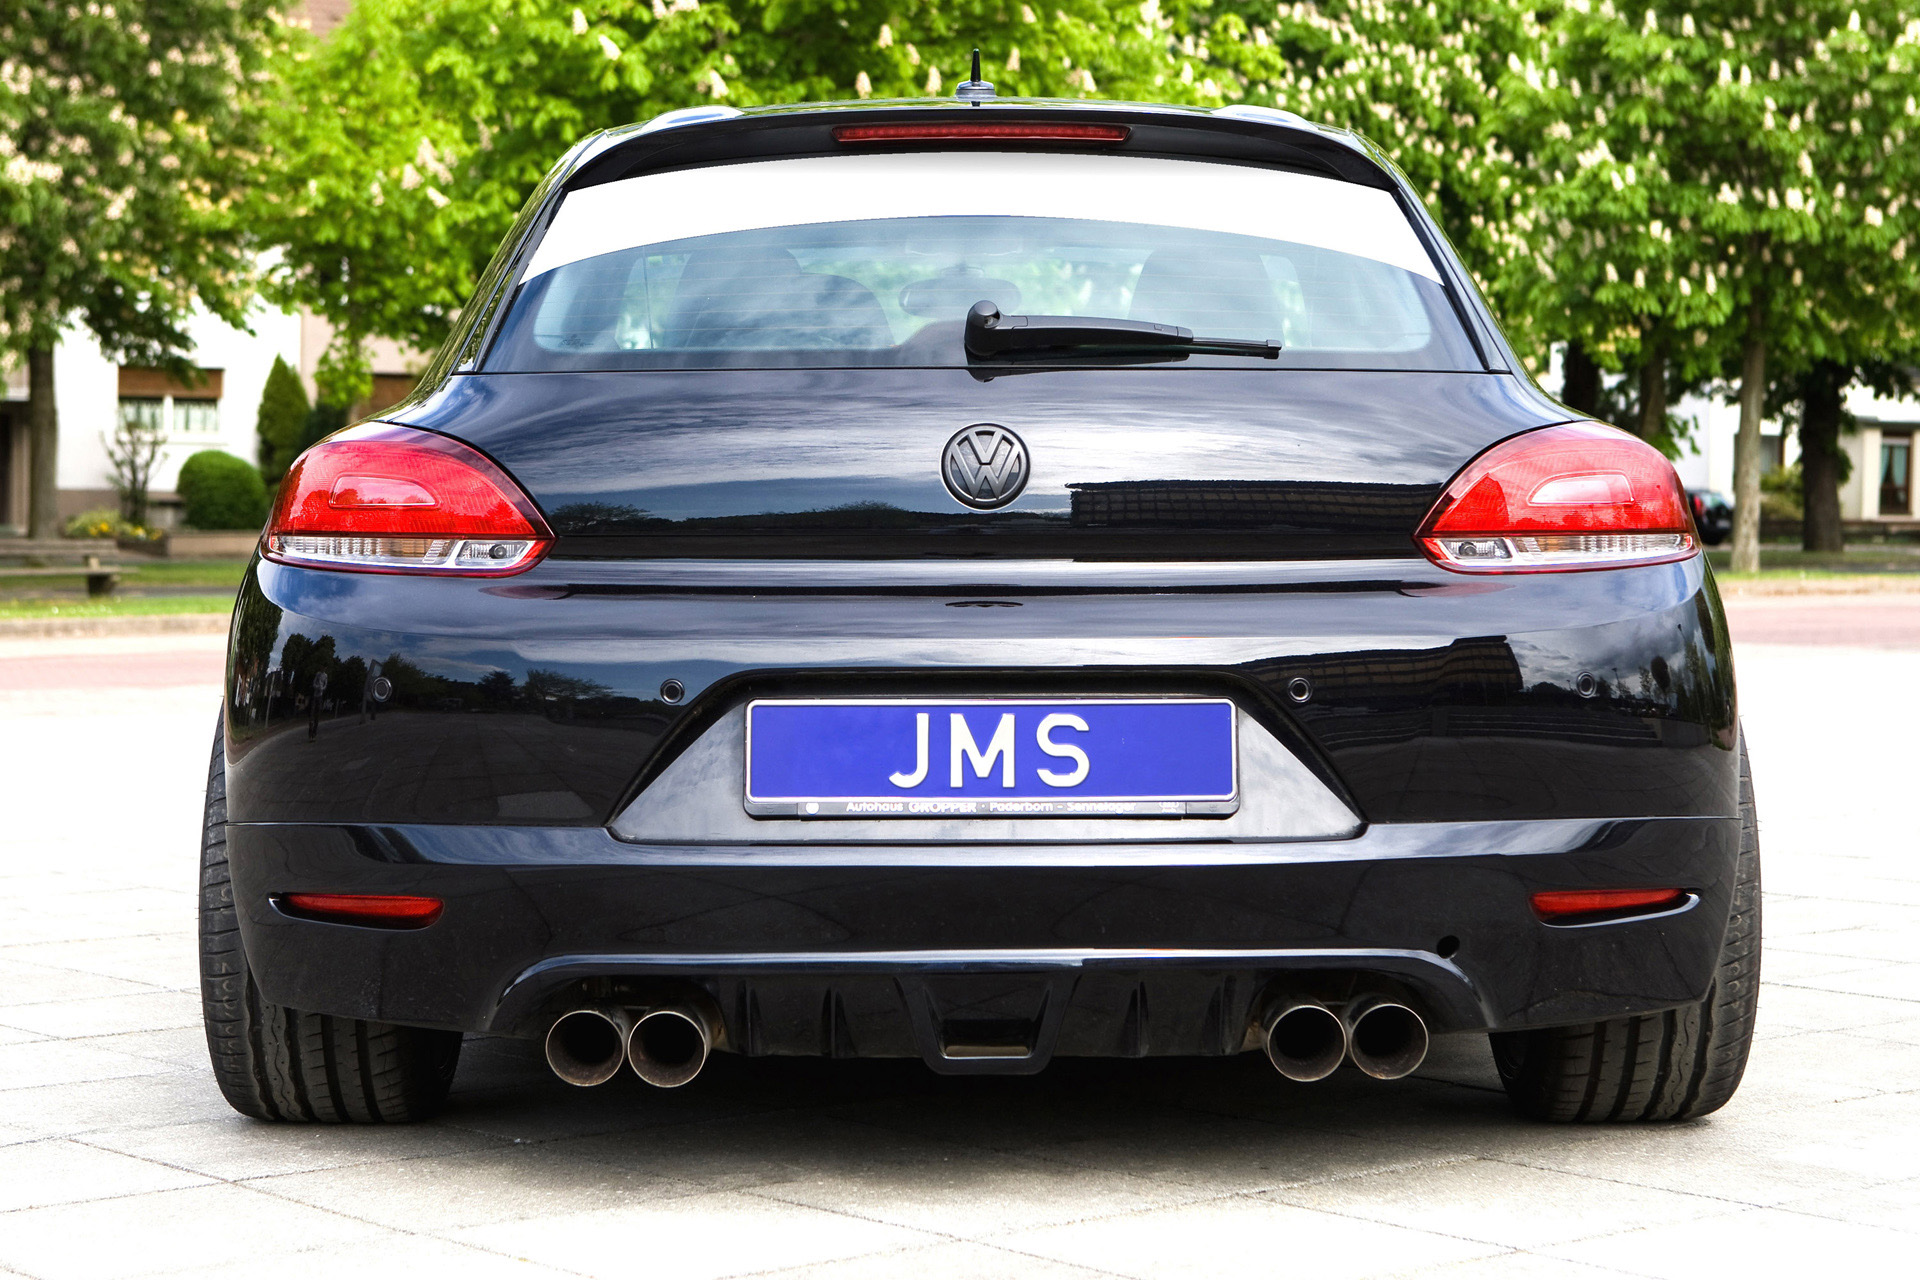 Jms Vw Scirocco Photos Photogallery With 4 Pics